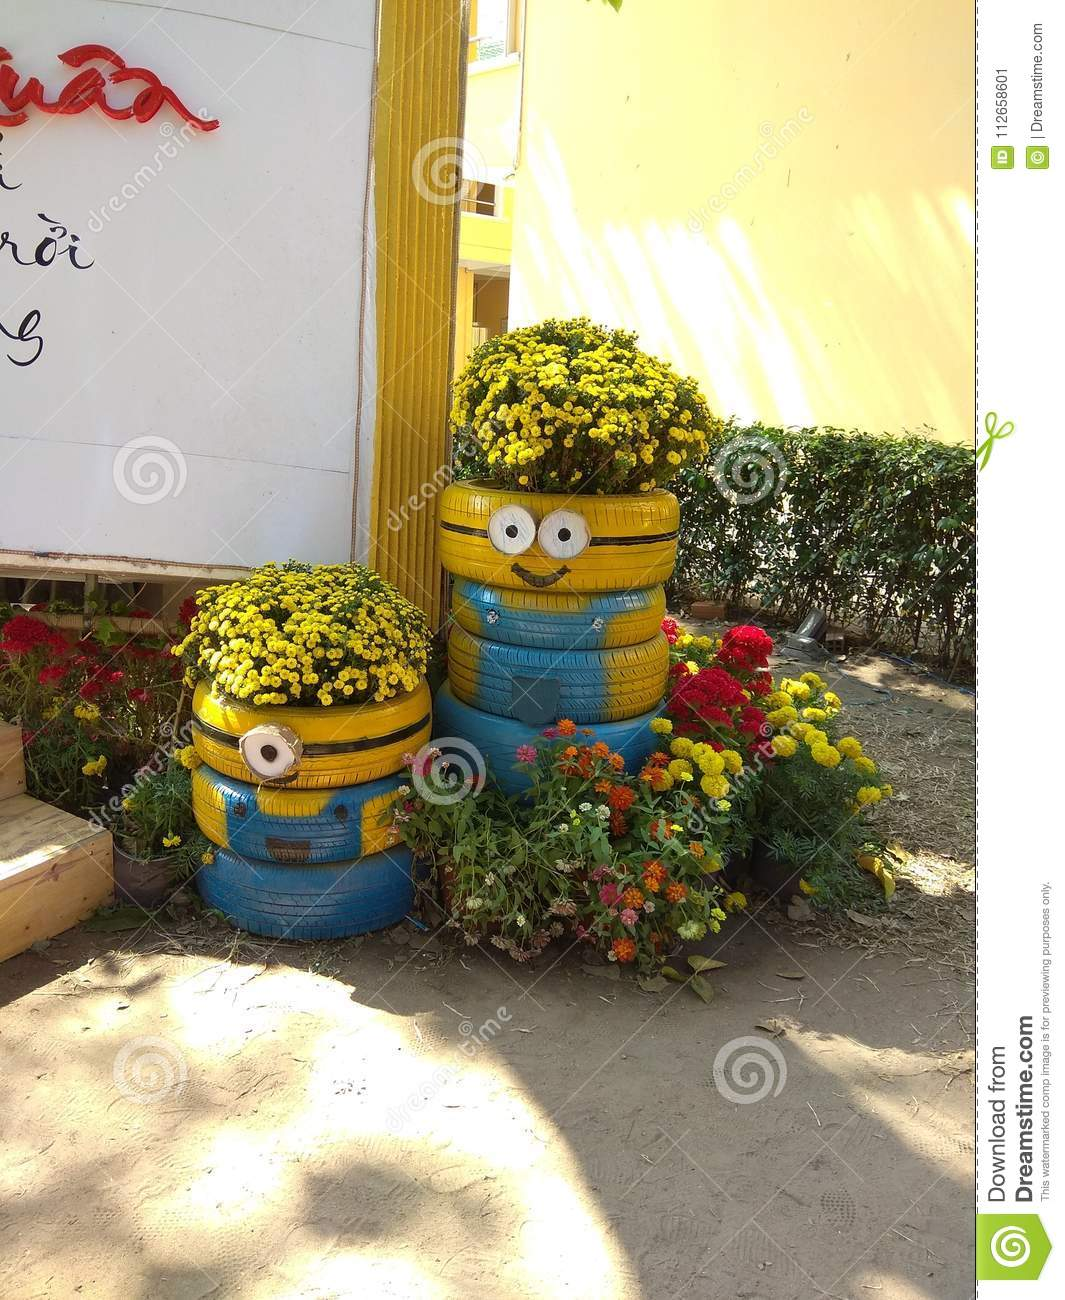 Minions Flower Pot - DIY Minion Planting Pot - Minions Recycle Project For Creative Kid